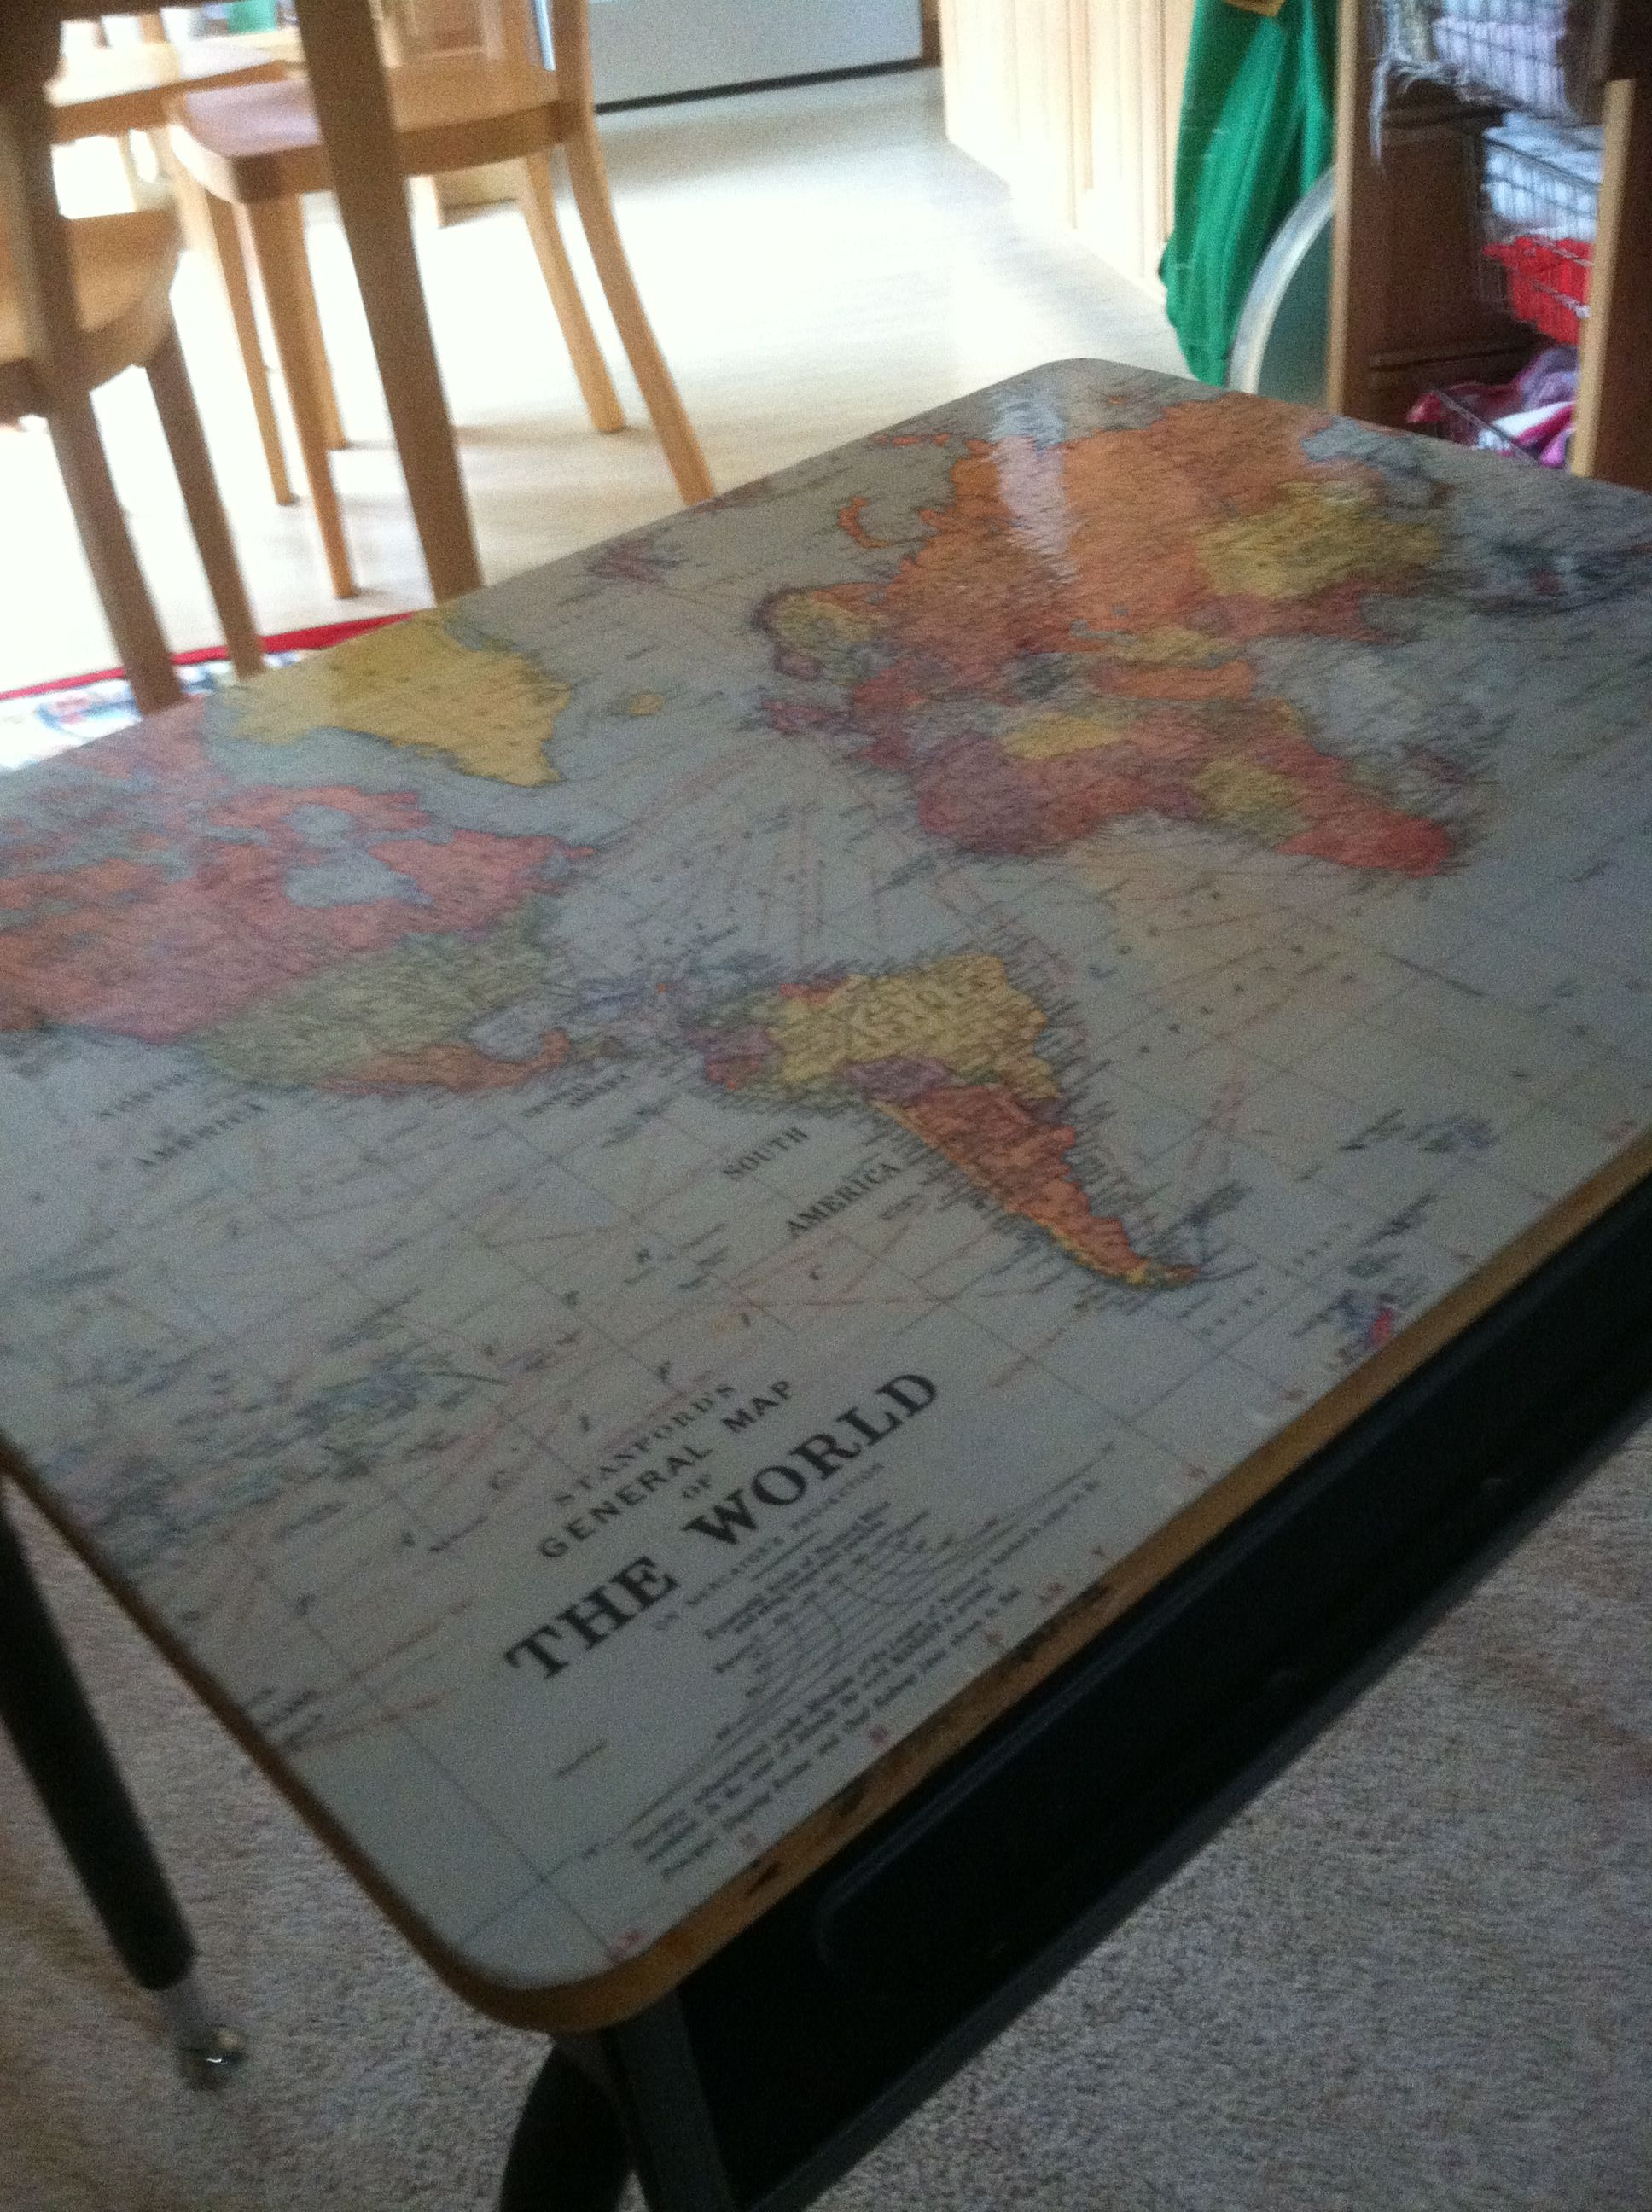 Used world map paper from paper source and glossy mod podge on an used world map paper from paper source and glossy mod podge on an old school desk gumiabroncs Image collections